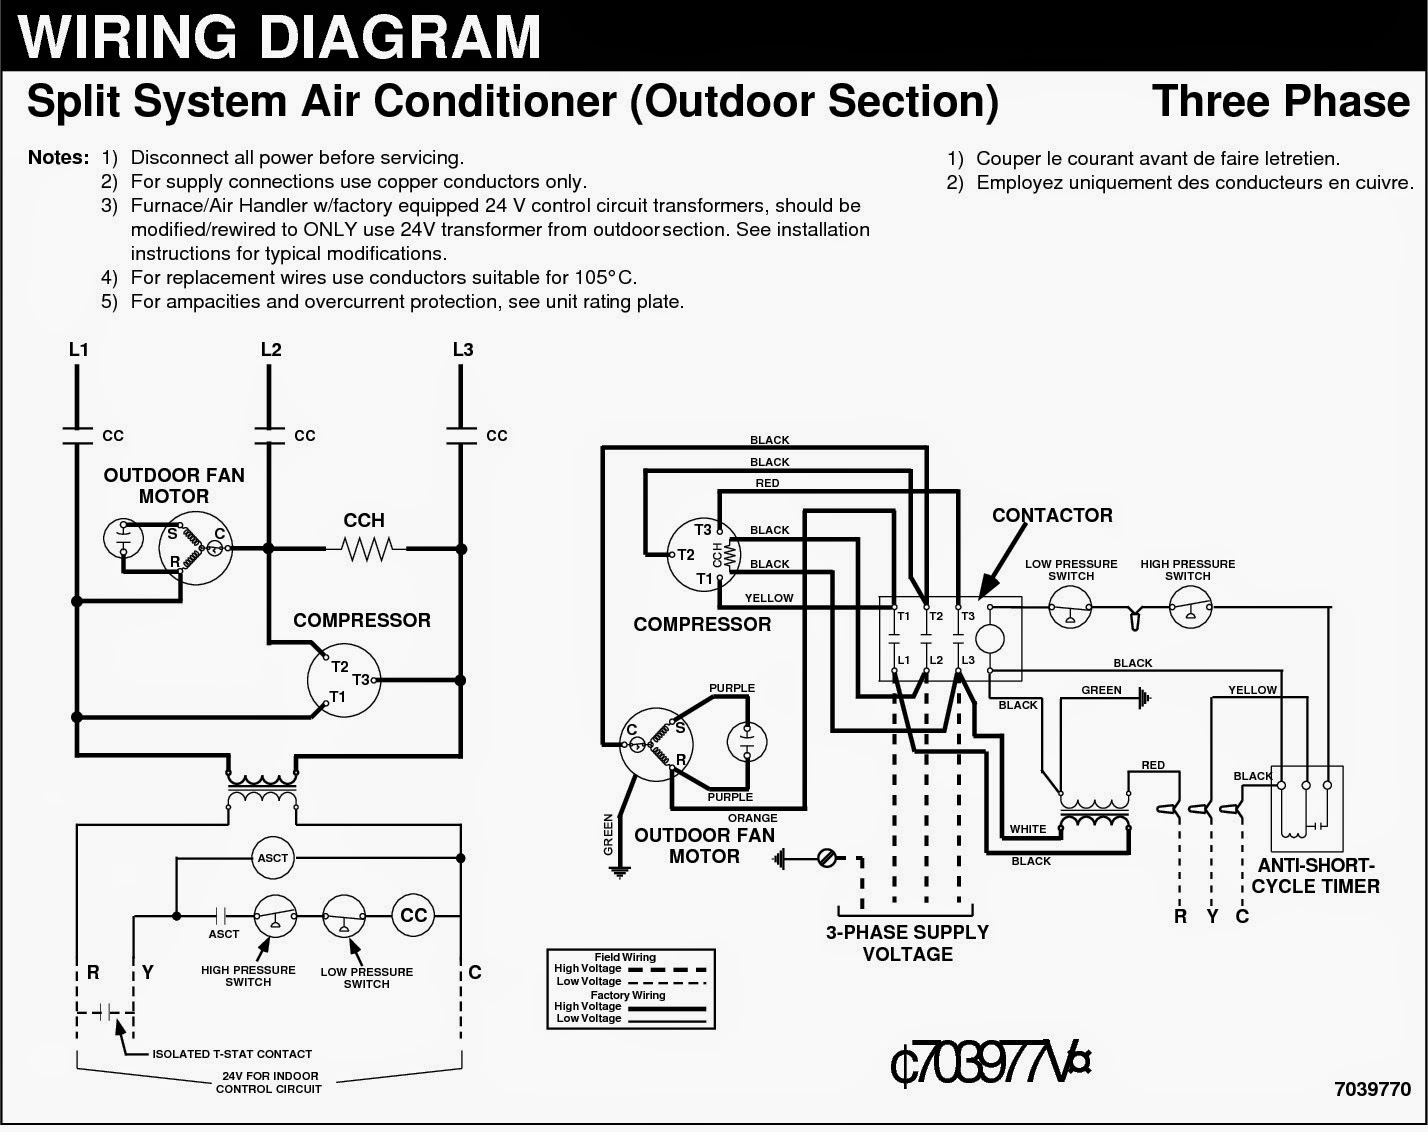 3+phase electrical wiring diagrams for air conditioning systems part two 1 phase wiring diagram at suagrazia.org